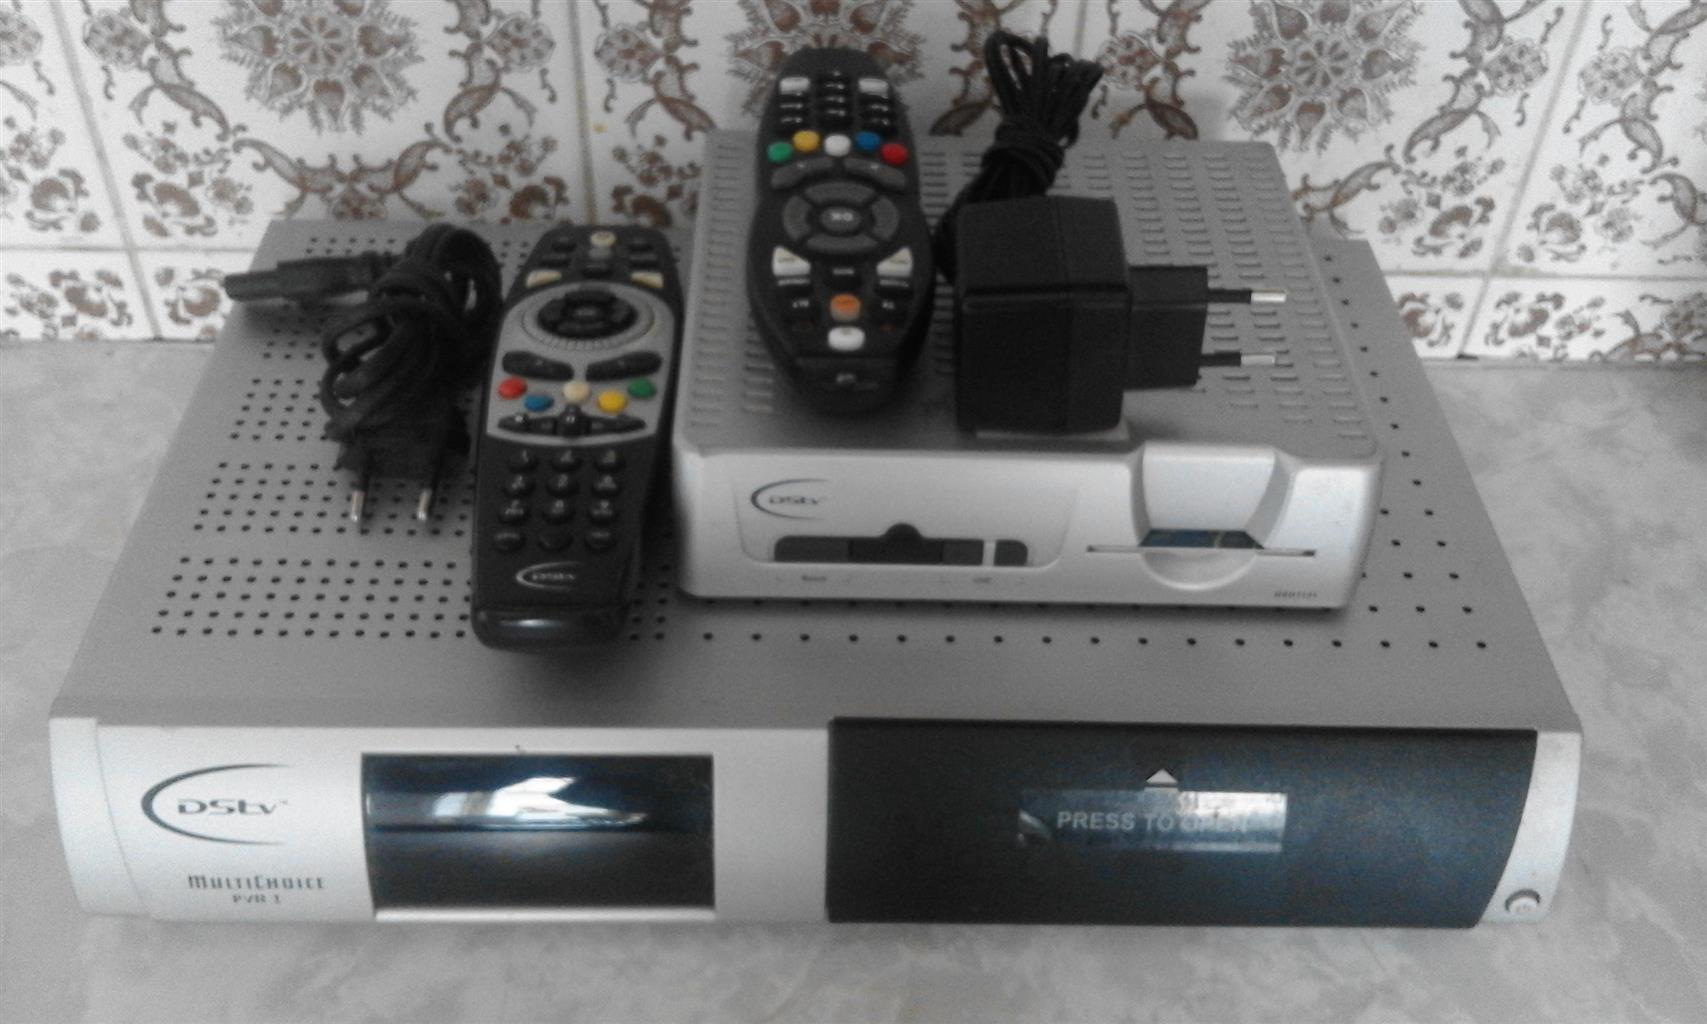 DSTV PVR Decoder able to view two different channel at the same time on two different Tv's on one subscription. Plus extra DSD1131 Decoder. Both can receive the free channels. R1000 for both.